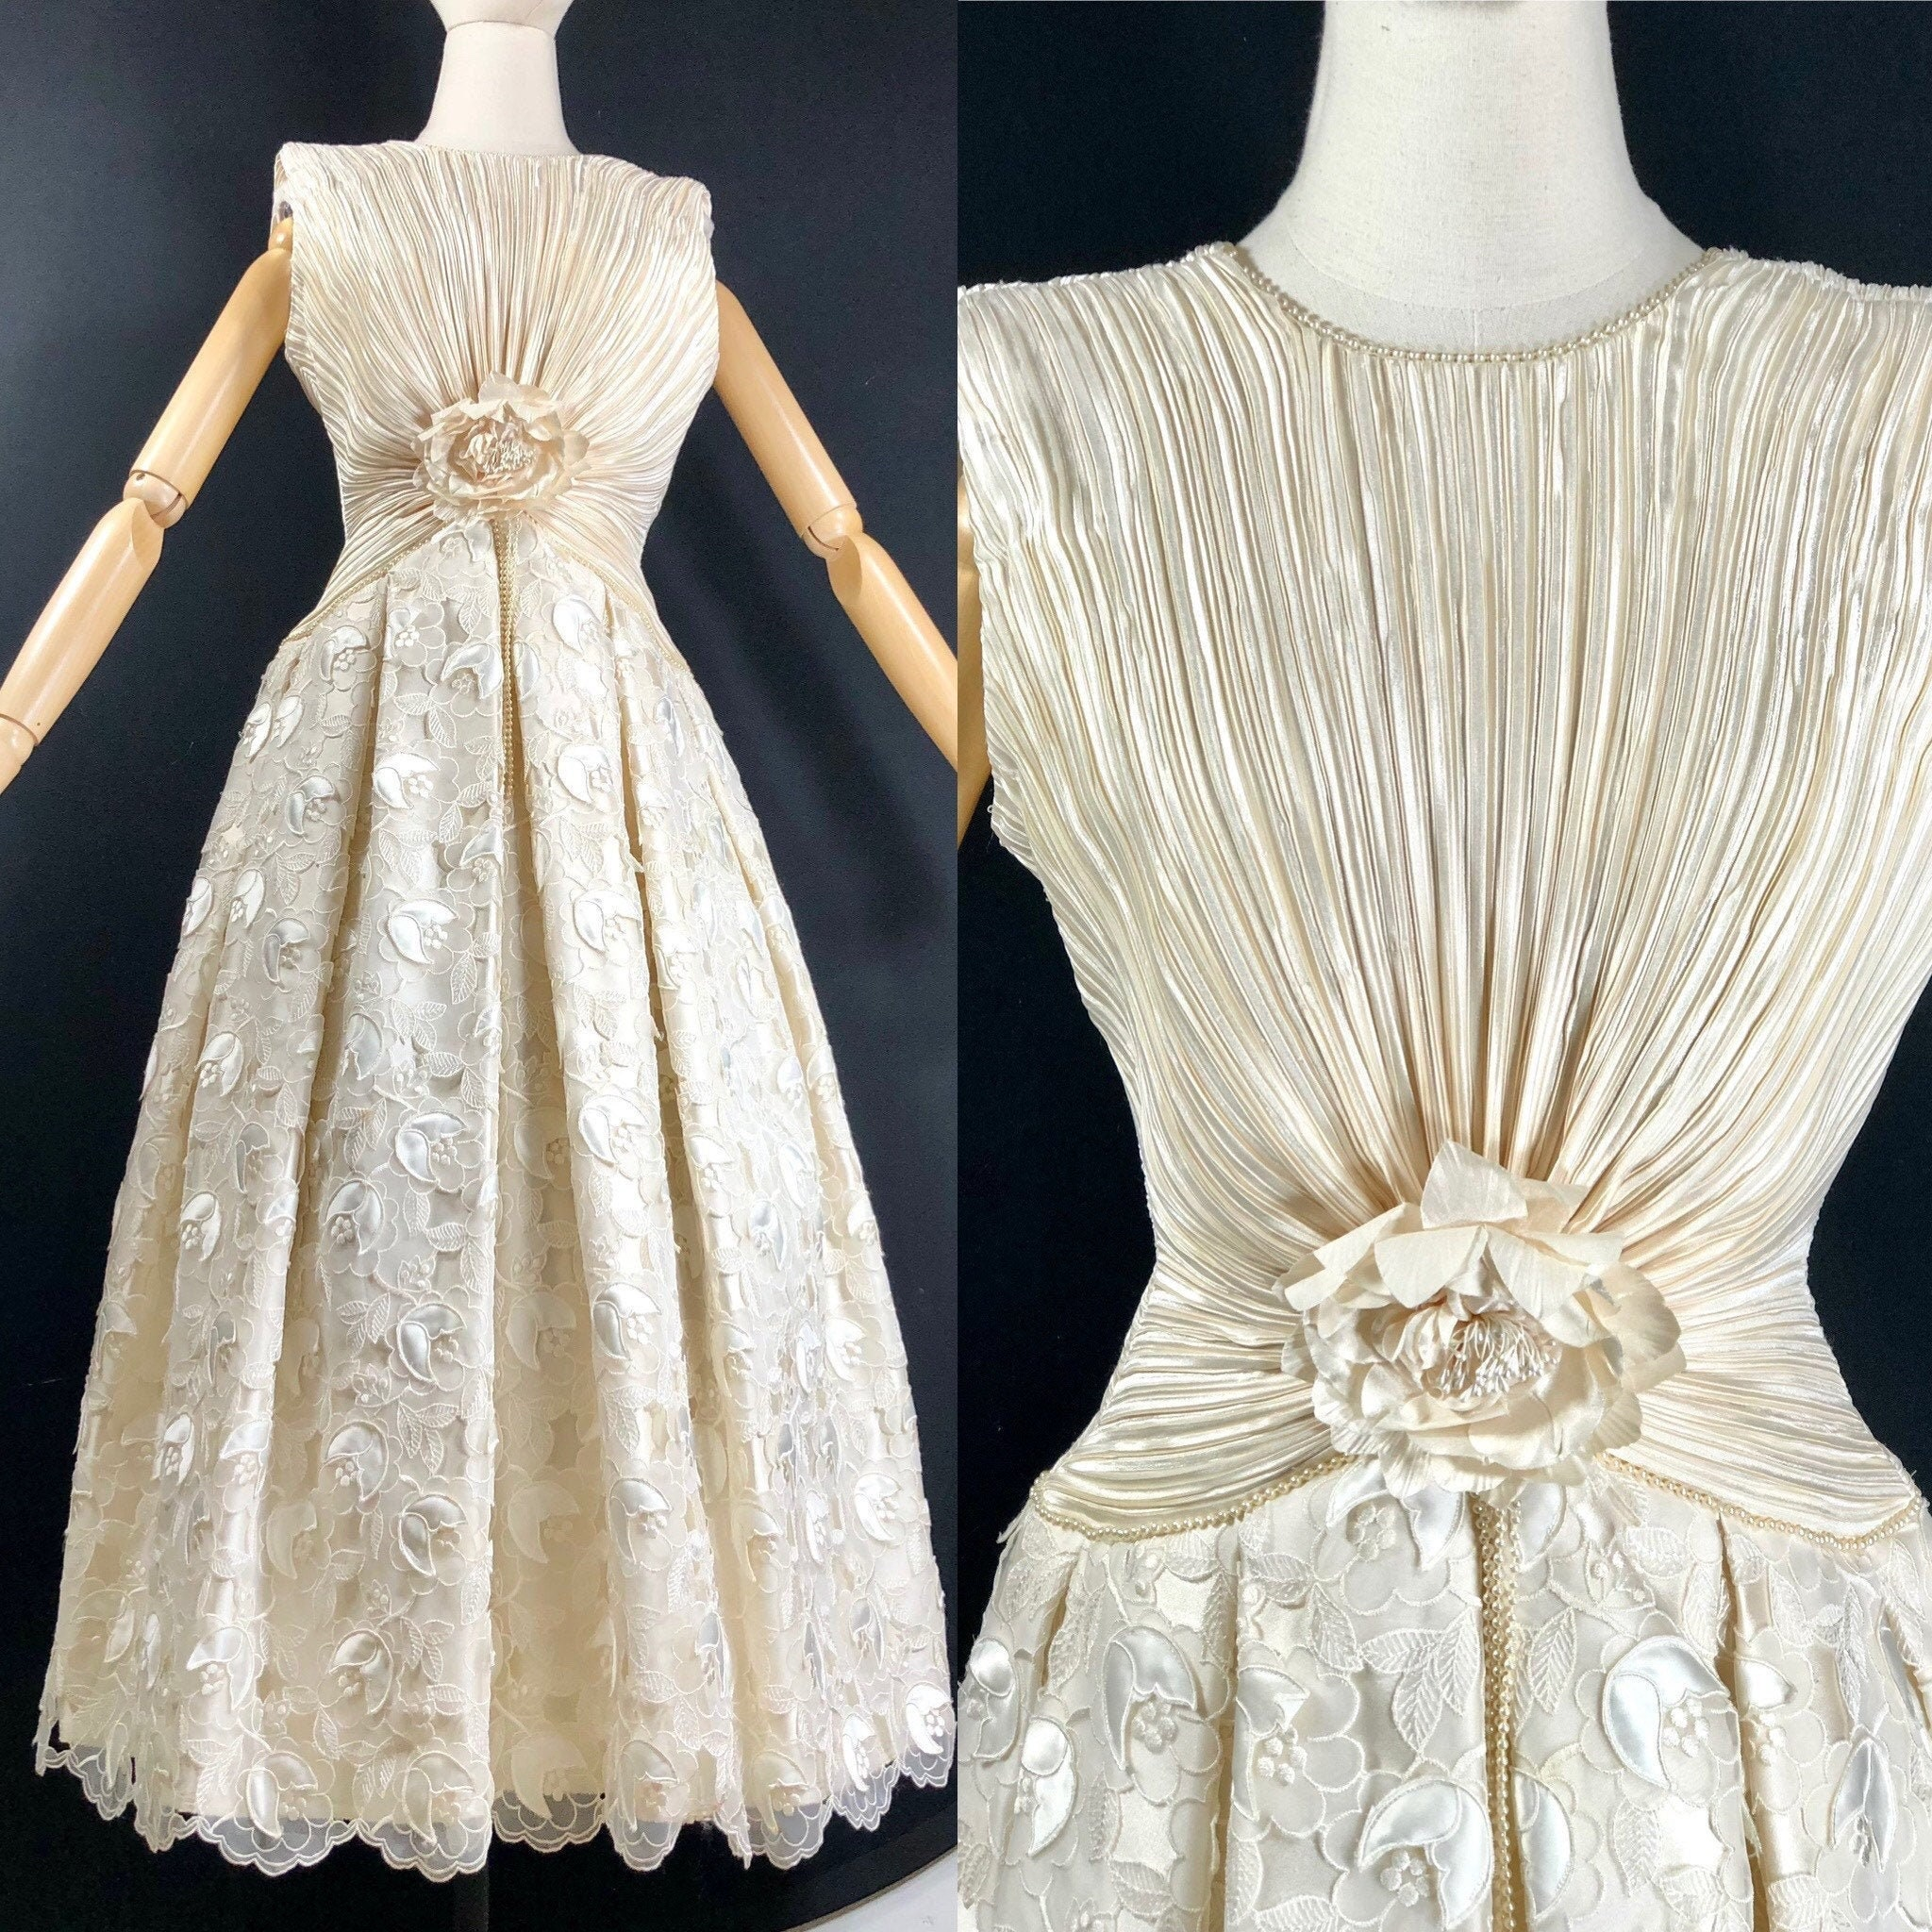 80s Dresses | Casual to Party Dresses 80S DressVintage George F. Couture Formal Evening Gown White Floral Cut Out Lace Ruched Bodice 36 Bust Wedding Party $50.00 AT vintagedancer.com